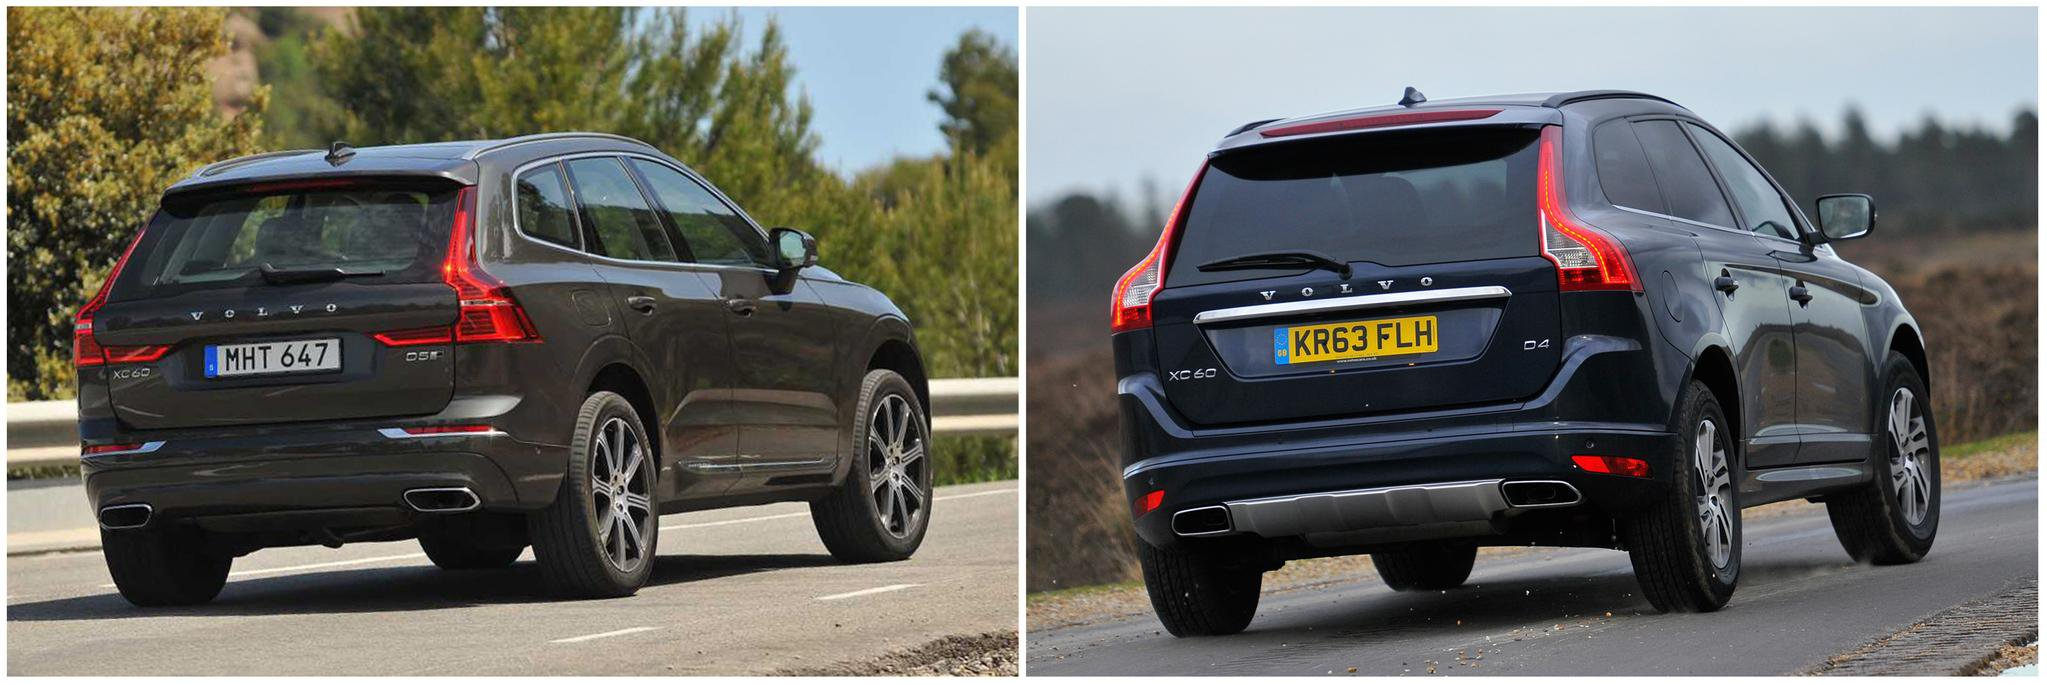 Volvo Xc60 New Vs Old Compared What Car